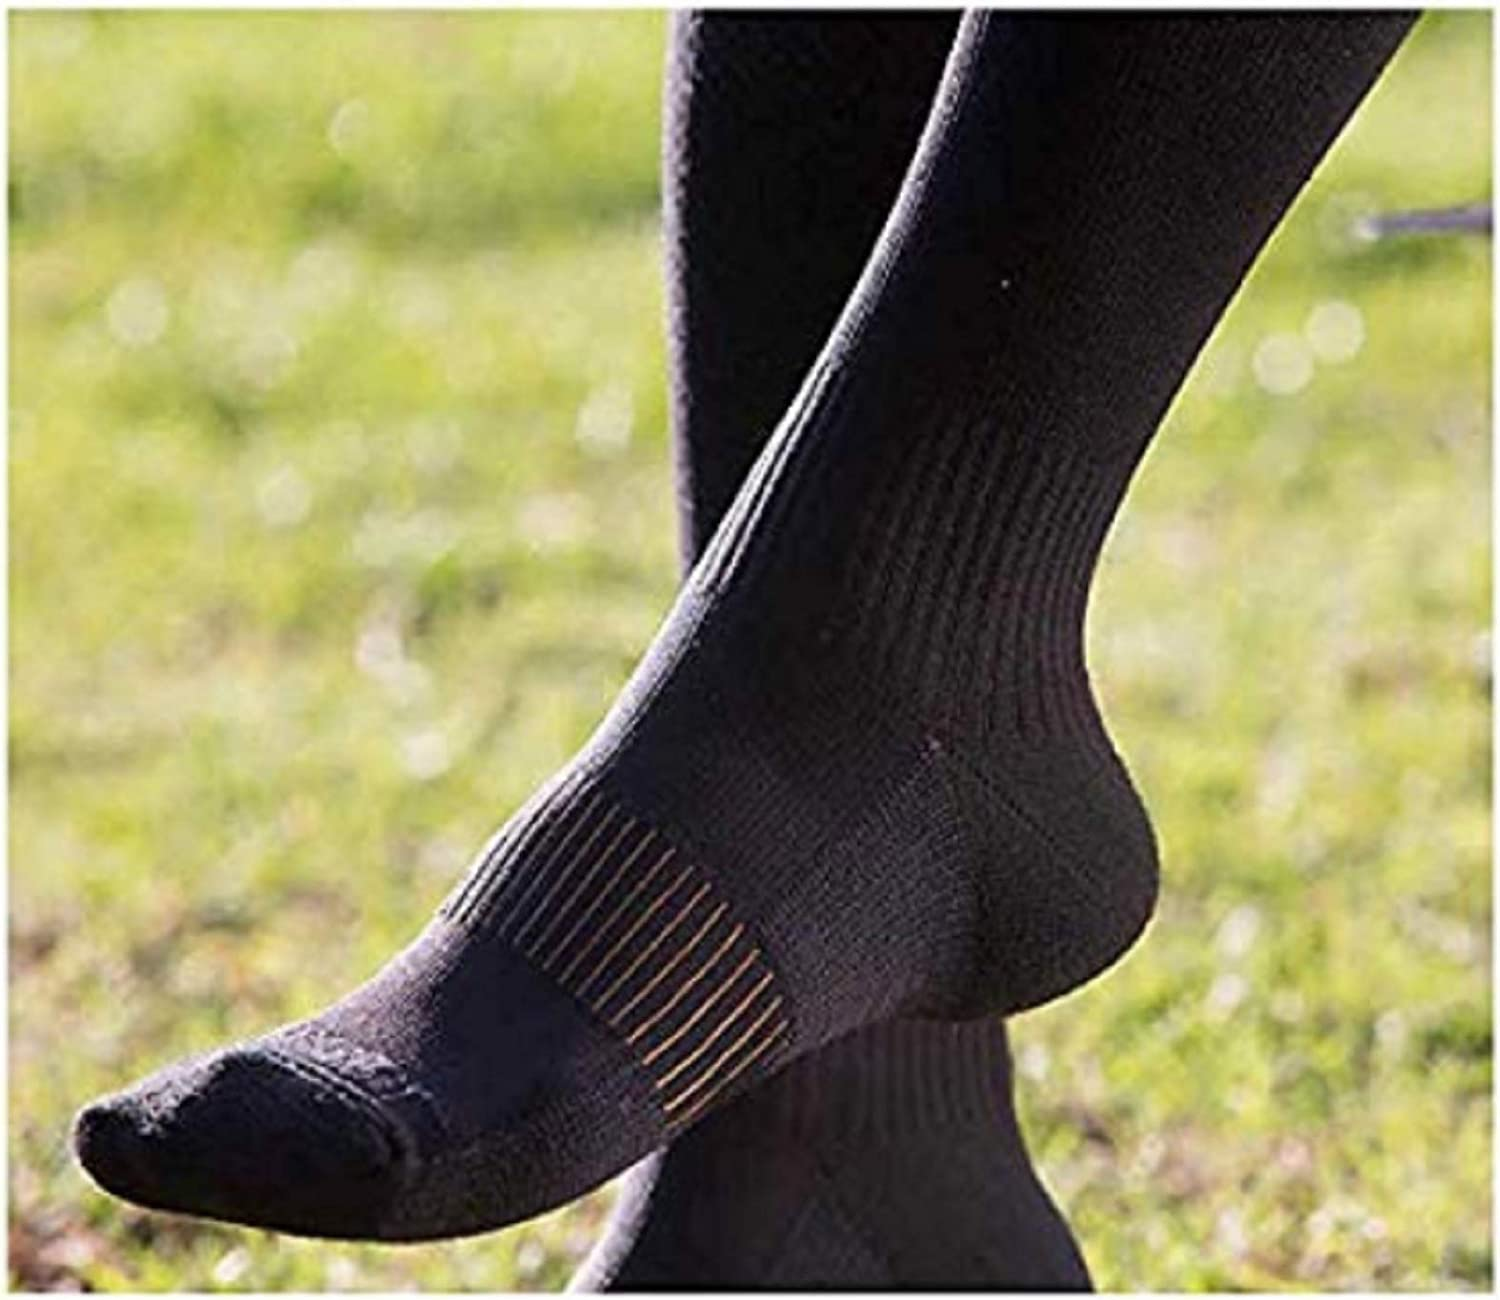 Copper Fit Unisex Compression Sock Choose Size and Pairs